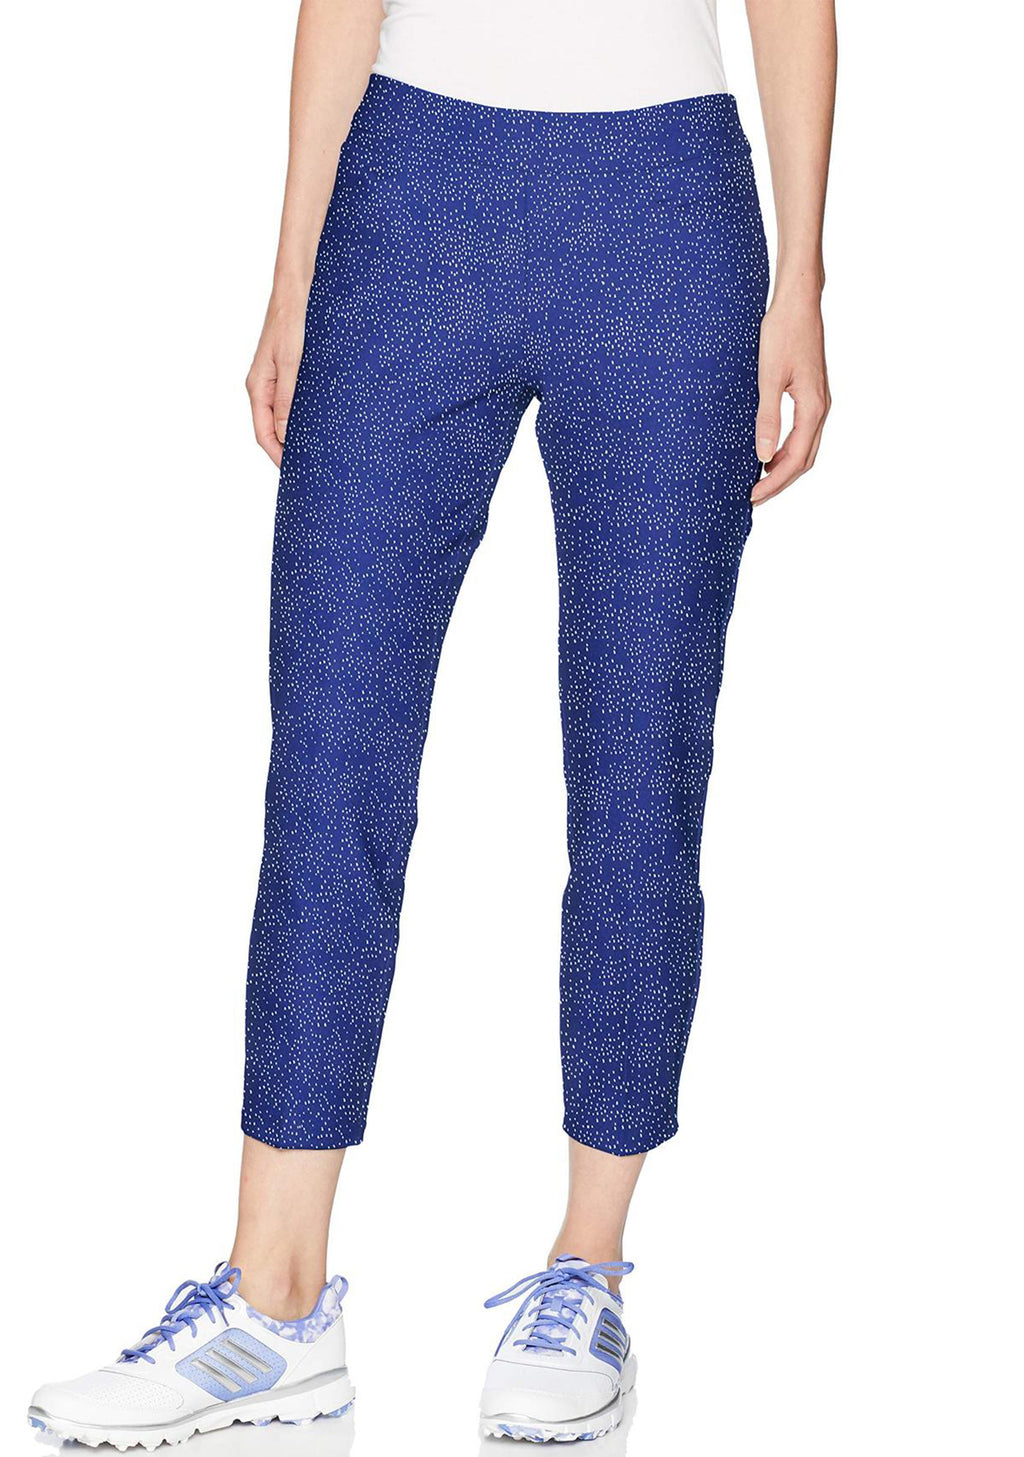 ADIDAS WOMENS PULL ON PANT <BR> CW6729